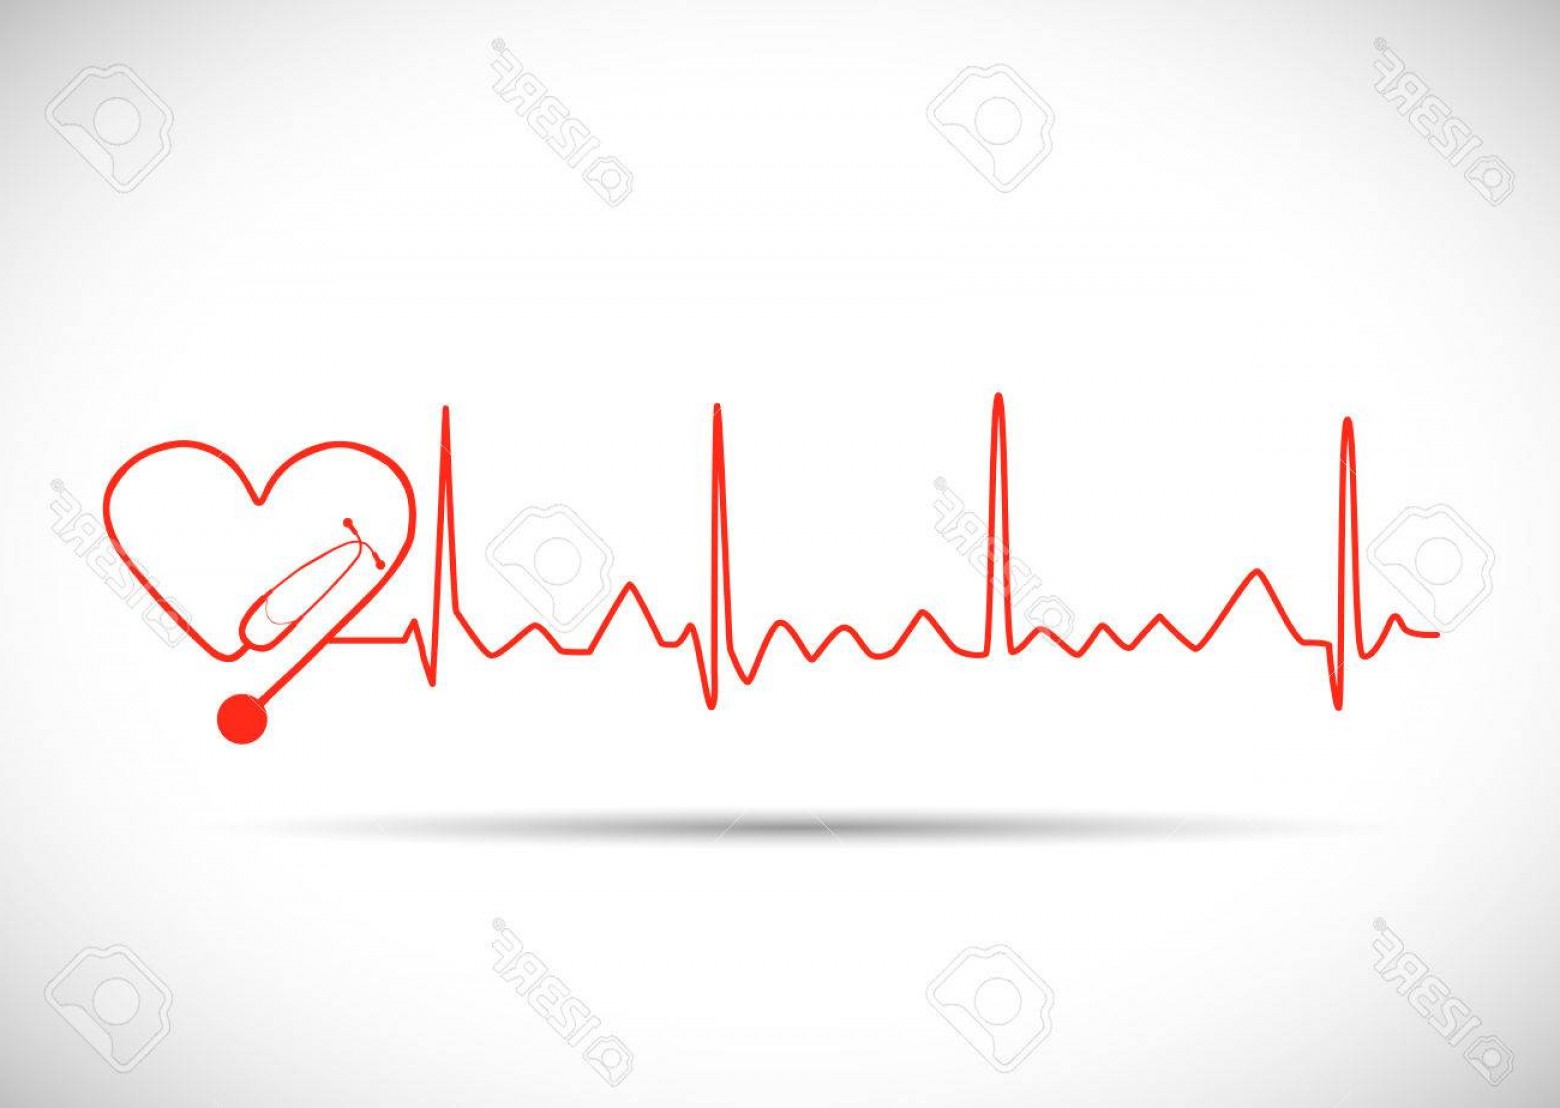 Heart Stethoscope With EKG Lines Vector: Photostock Vector Illustration Of A Heart Monitor Wave With Stethoscope Isolated On A White Background